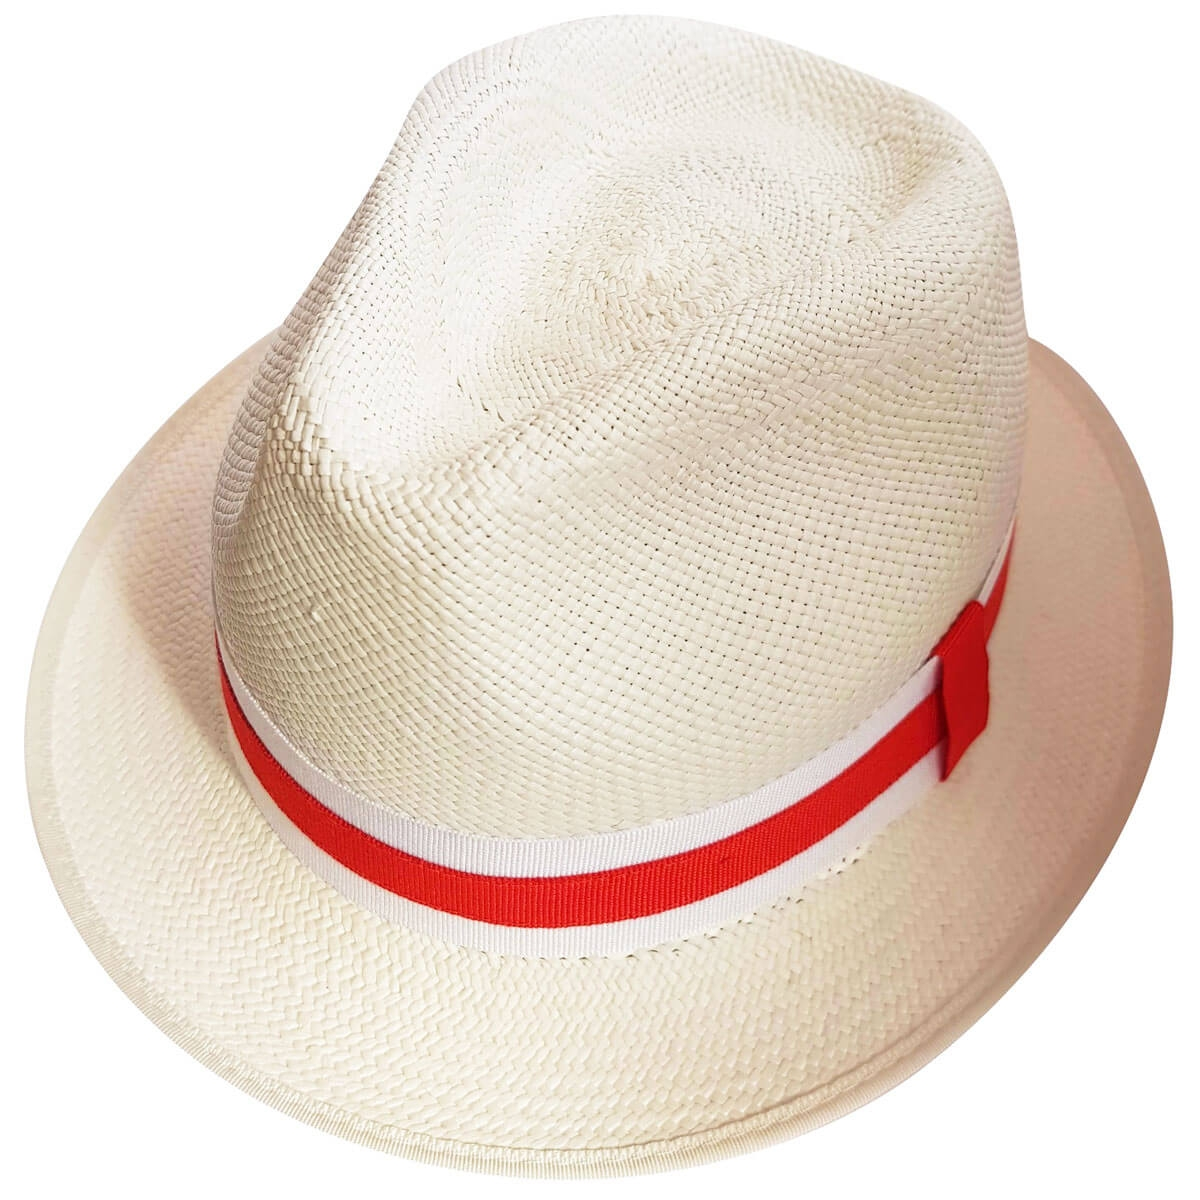 George Snap Brim Panama Hat - WHIT-Bleached in size 55